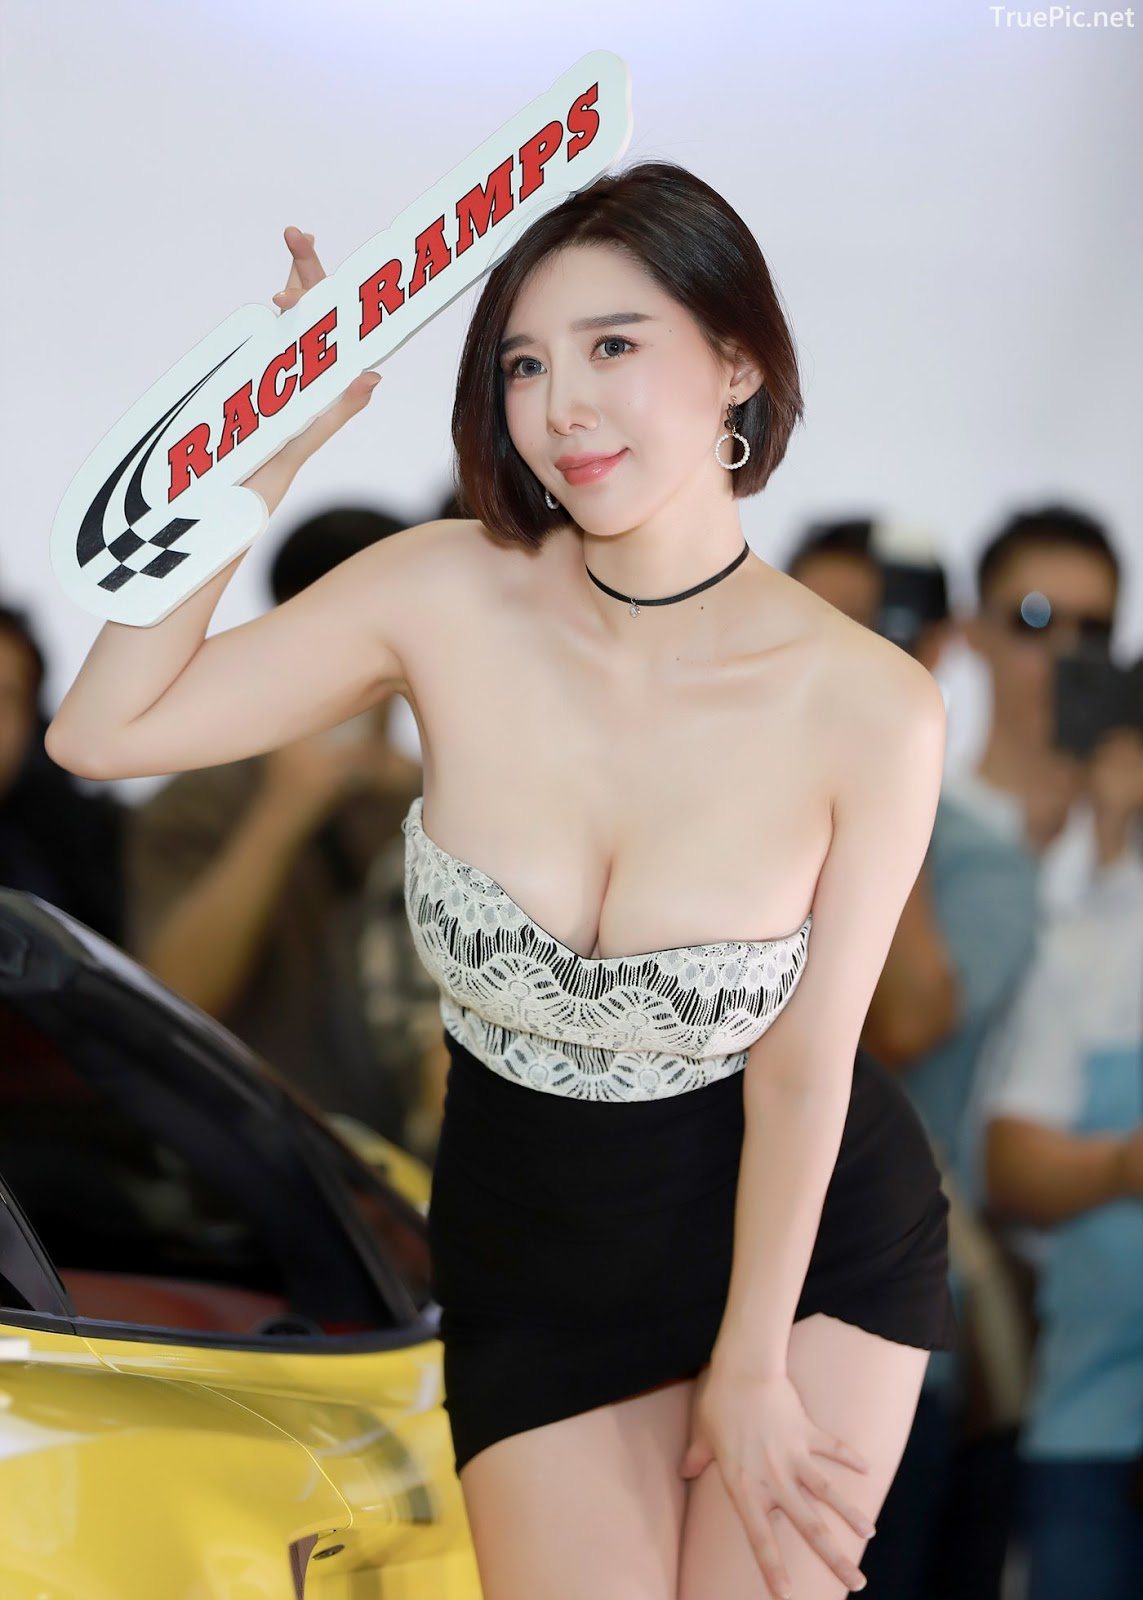 Korean Racing Model - Song Jooa - Seoul Auto Salon 2019 - Picture 1